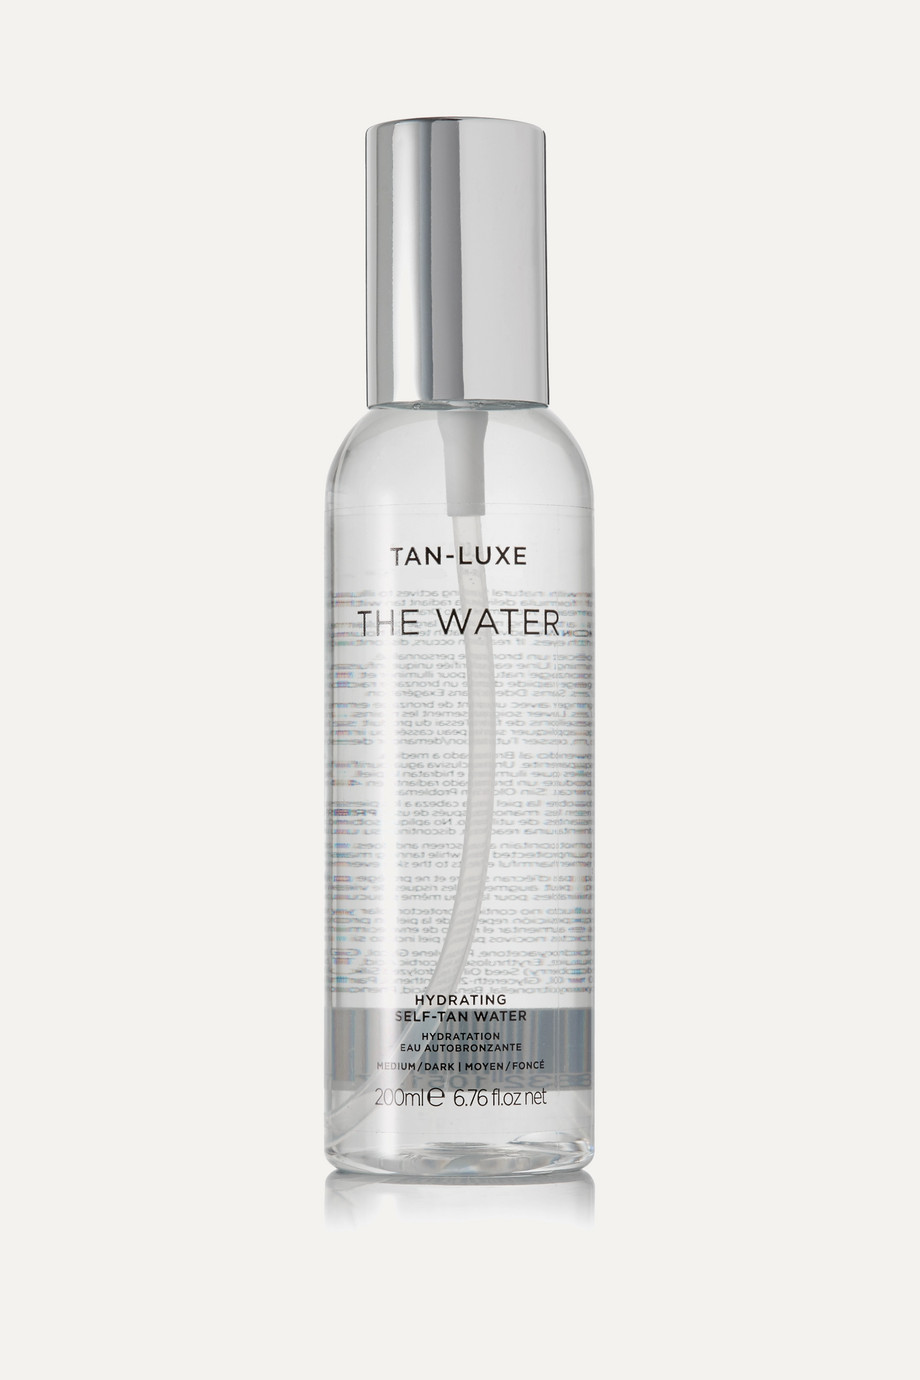 TAN-LUXE The Water Hydrating Self-Tan Water - Medium/Dark, 200ml